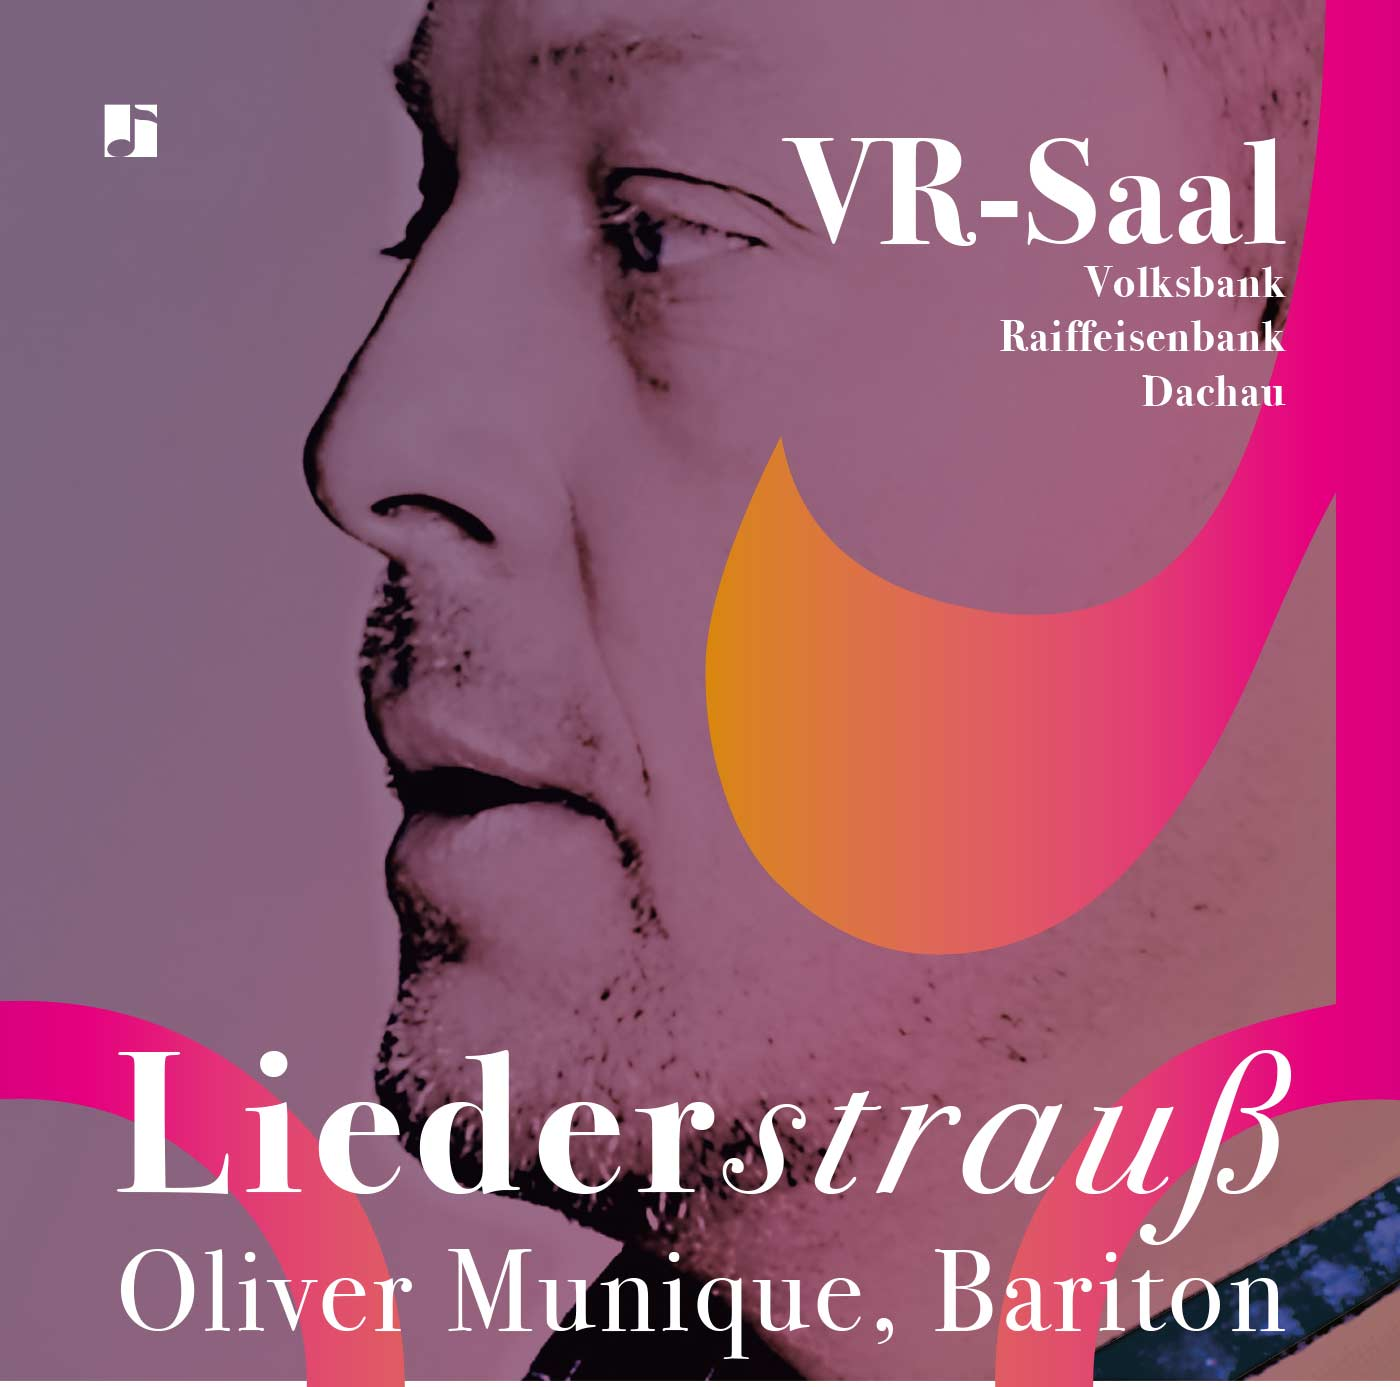 Click to enlarge image flyer01-liederstrauss_vr.jpg